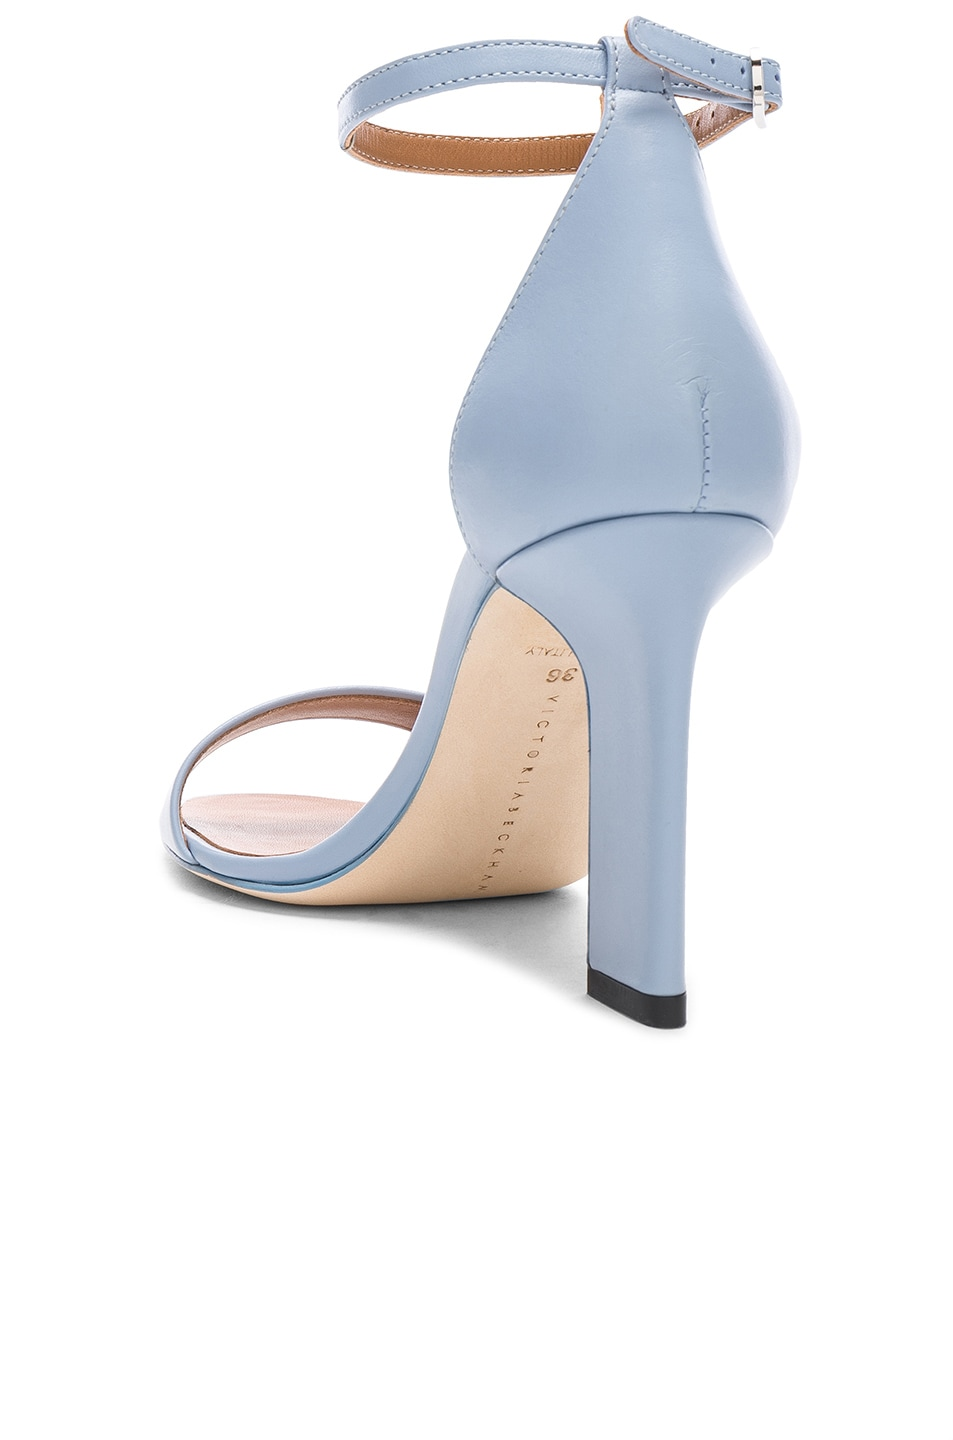 Image 3 of Victoria Beckham Anna Sandal in Baby Blue